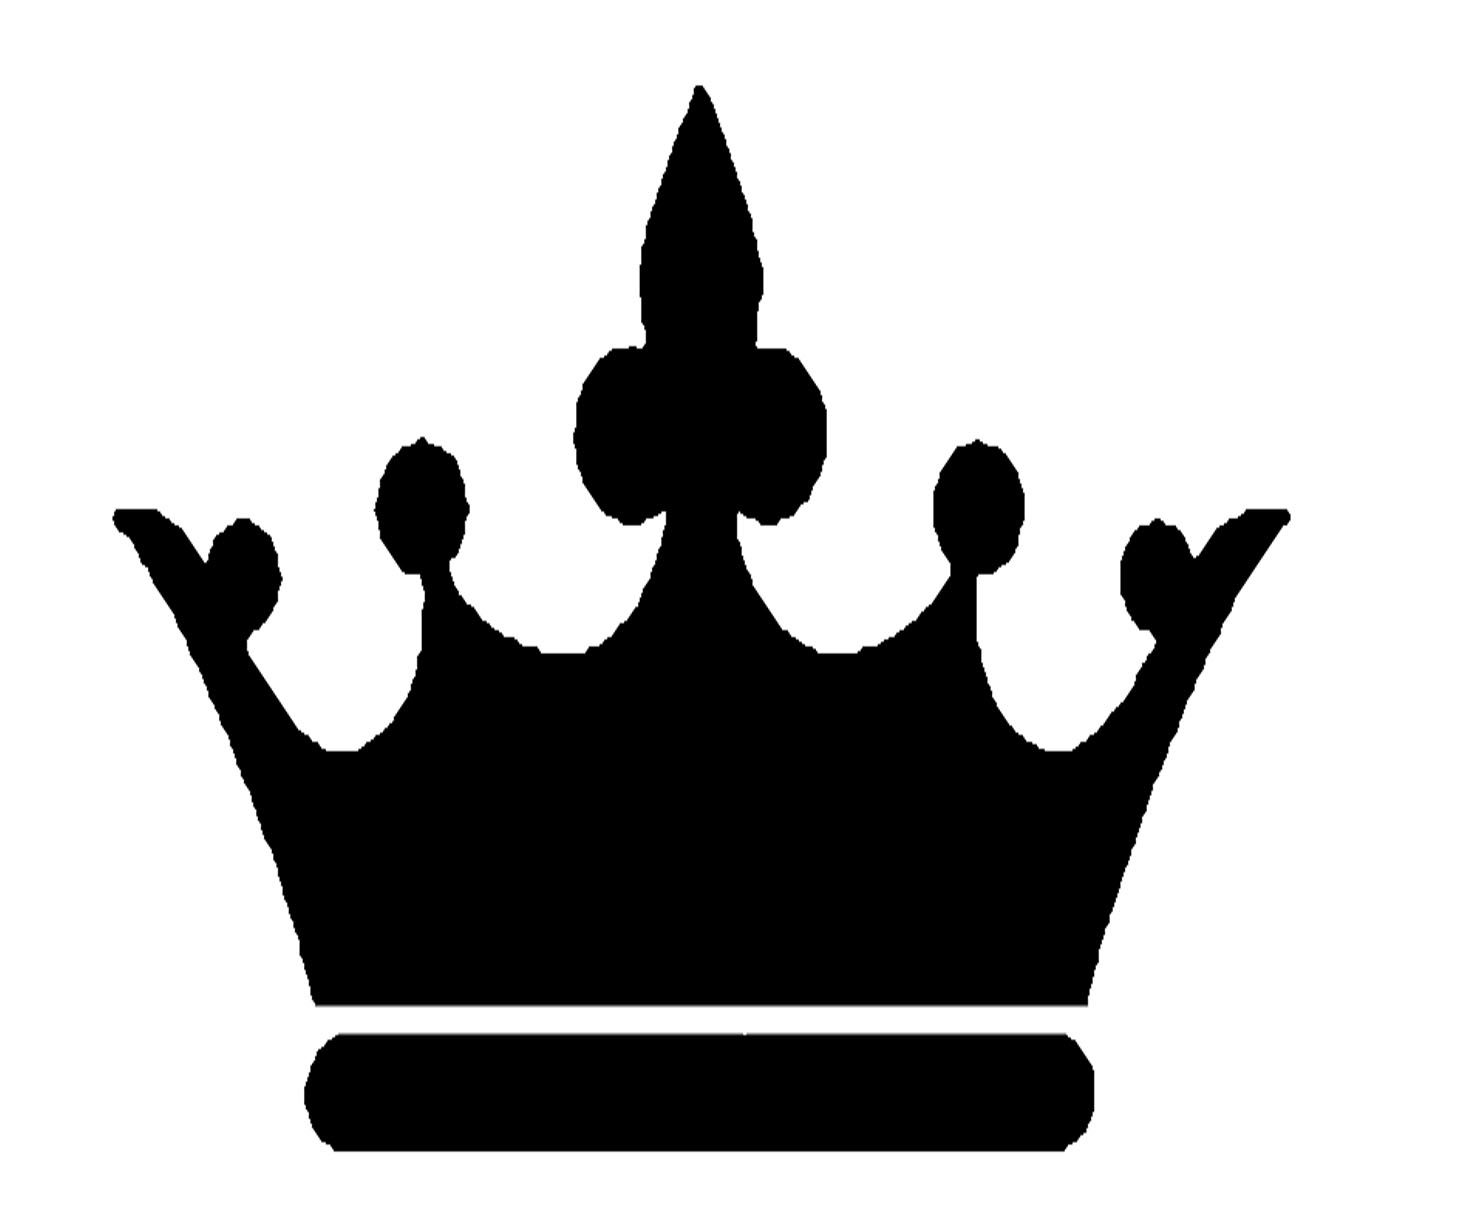 Crown photos clipart svg transparent stock King crown clip art black and white - ClipArt Best - ClipArt Best ... svg transparent stock